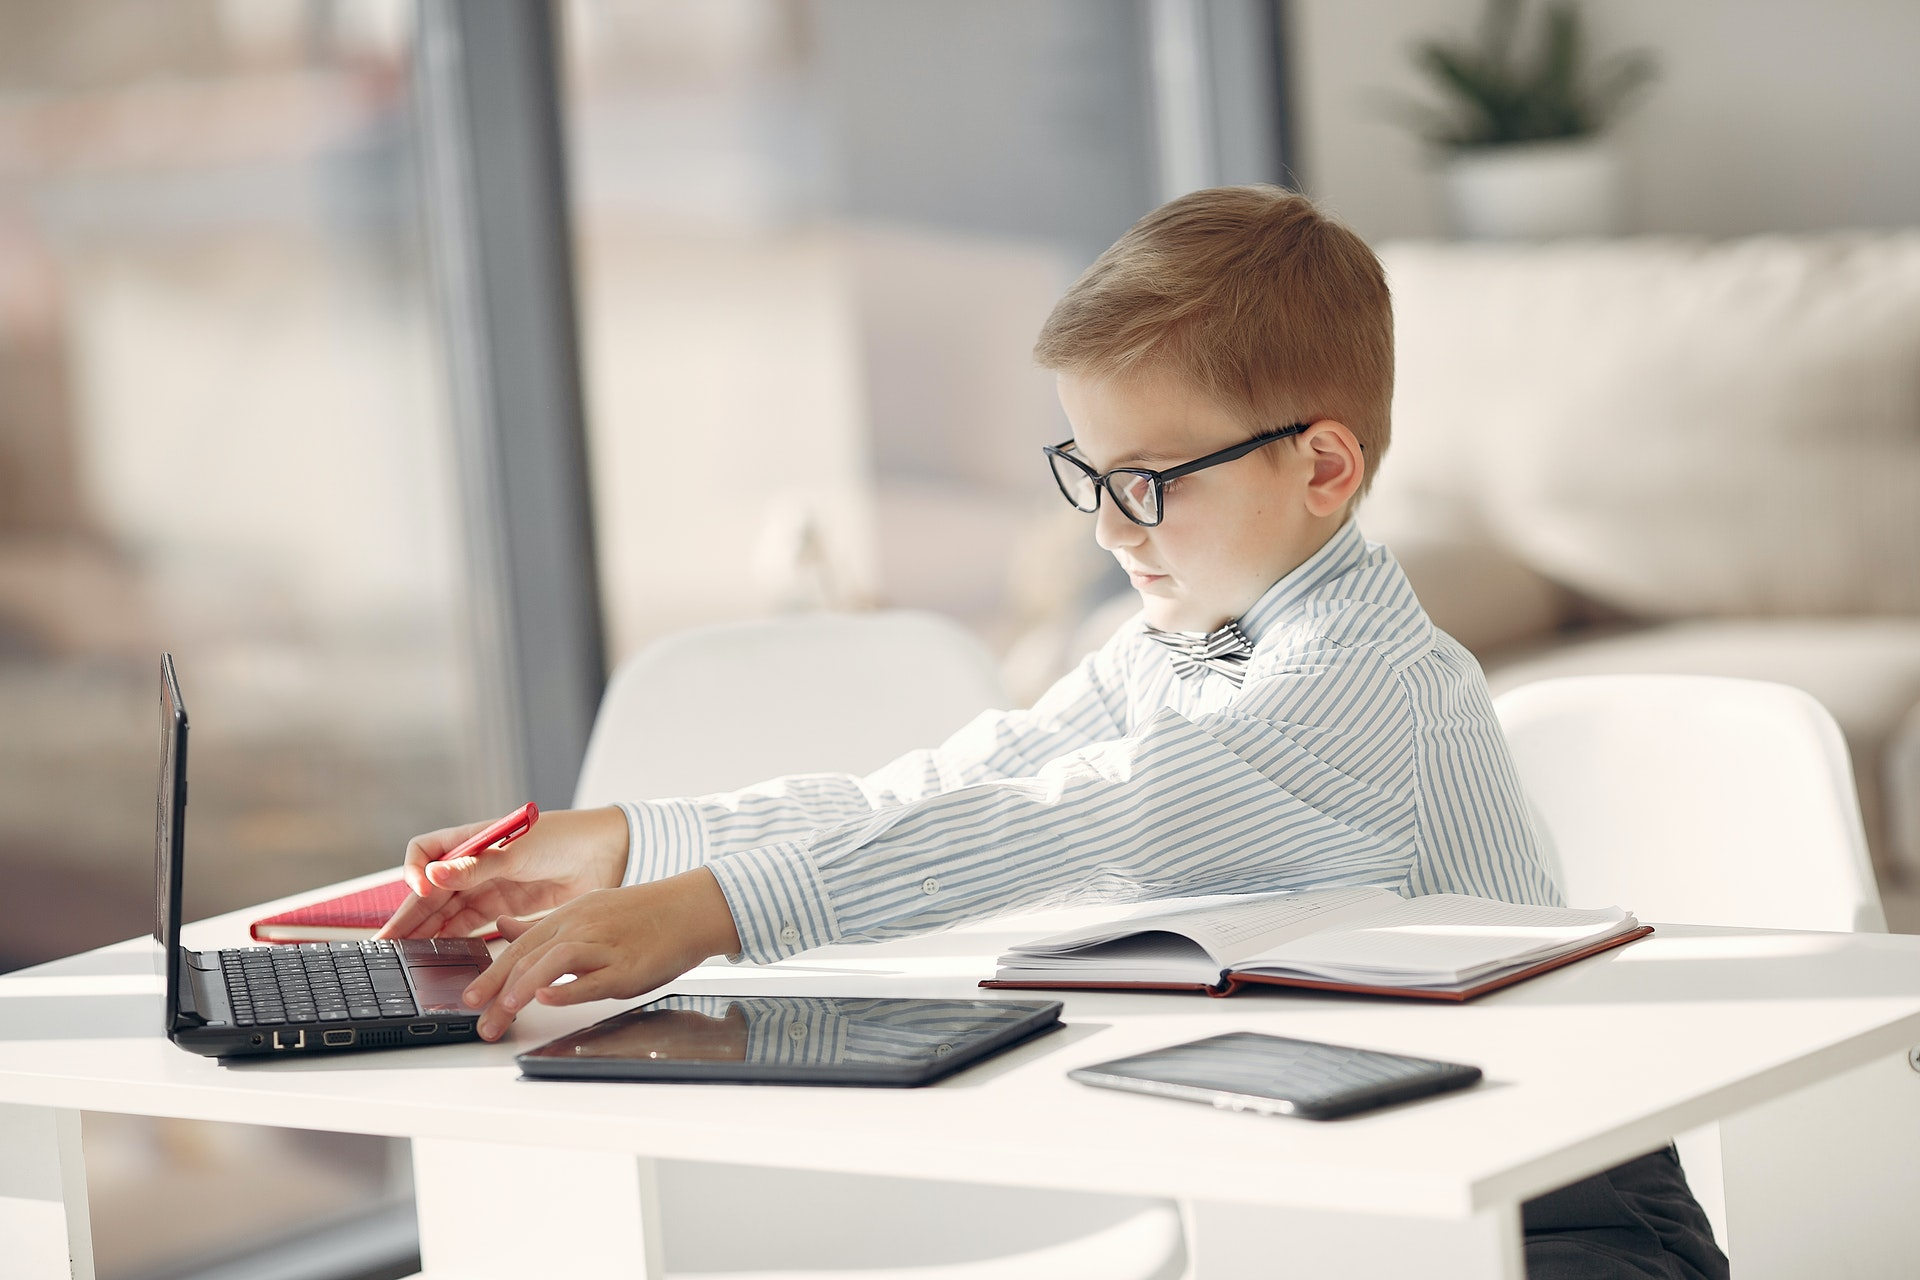 focused-little-businessman-with-laptop-and-other-gadgets-in-3874389